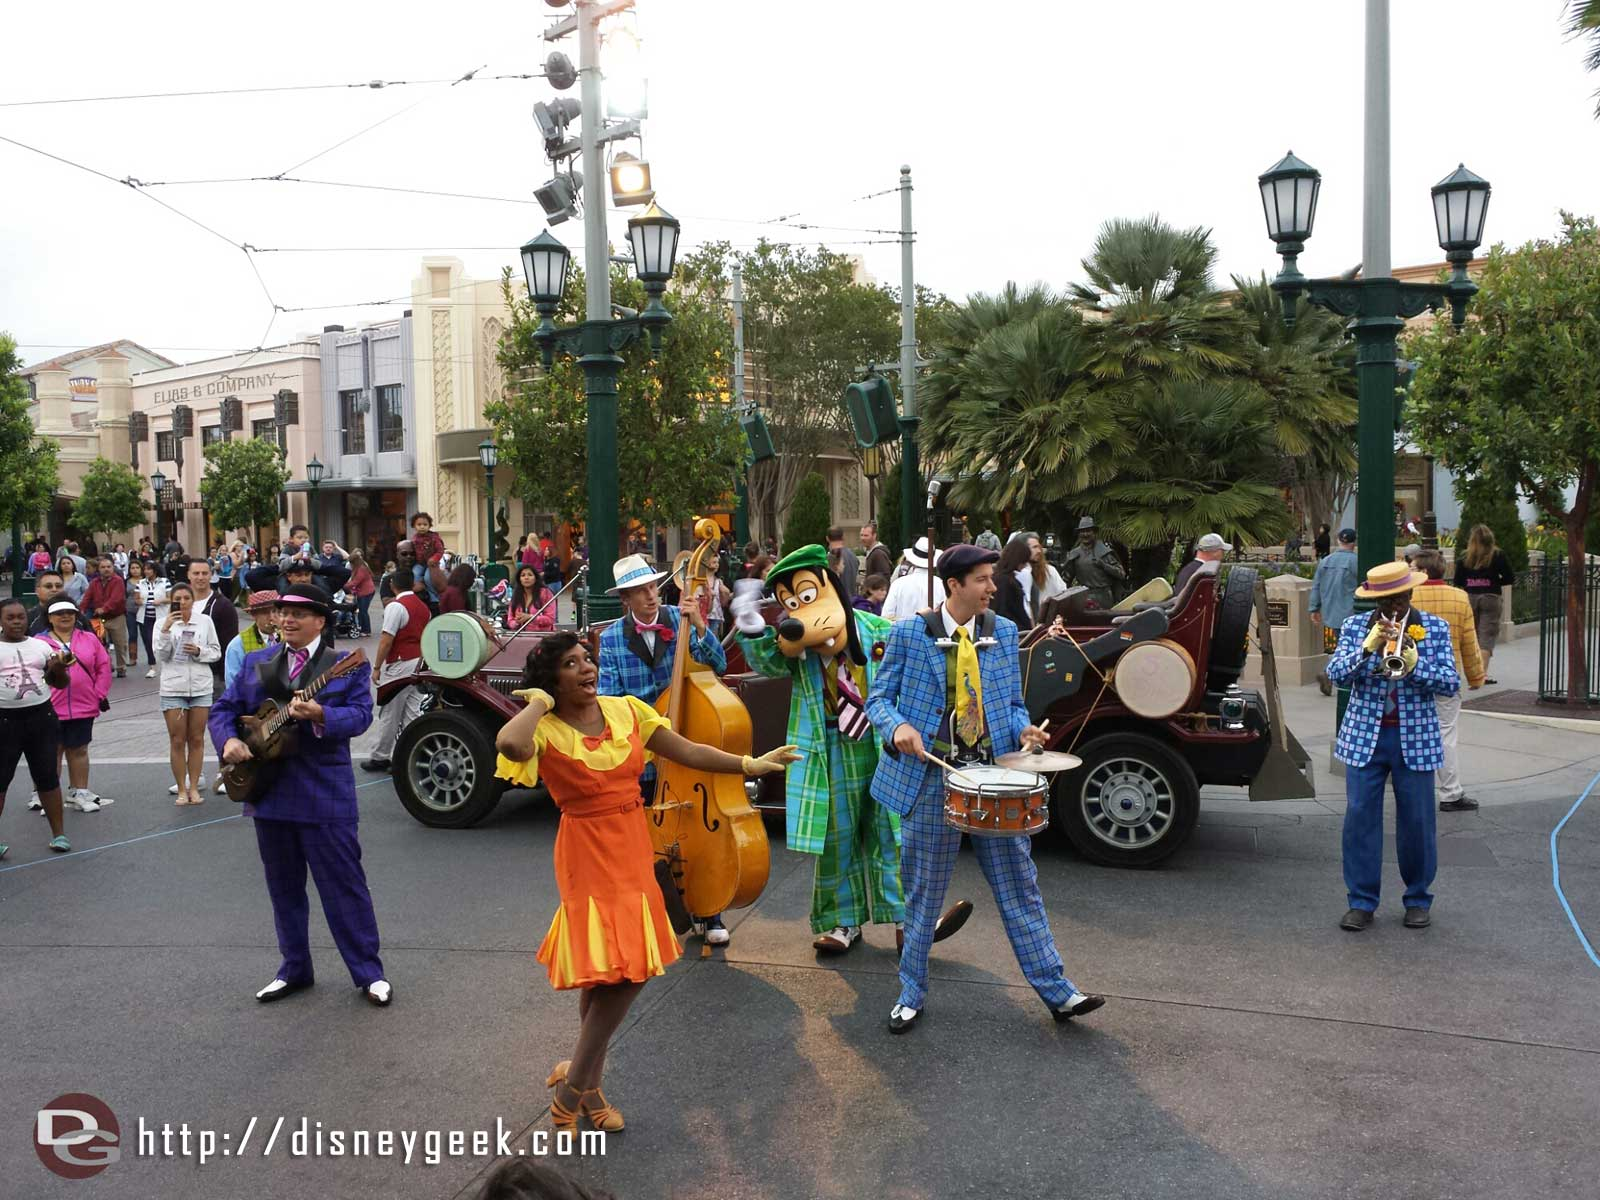 Goofy with Five and Dime #BuenaVistaStreet